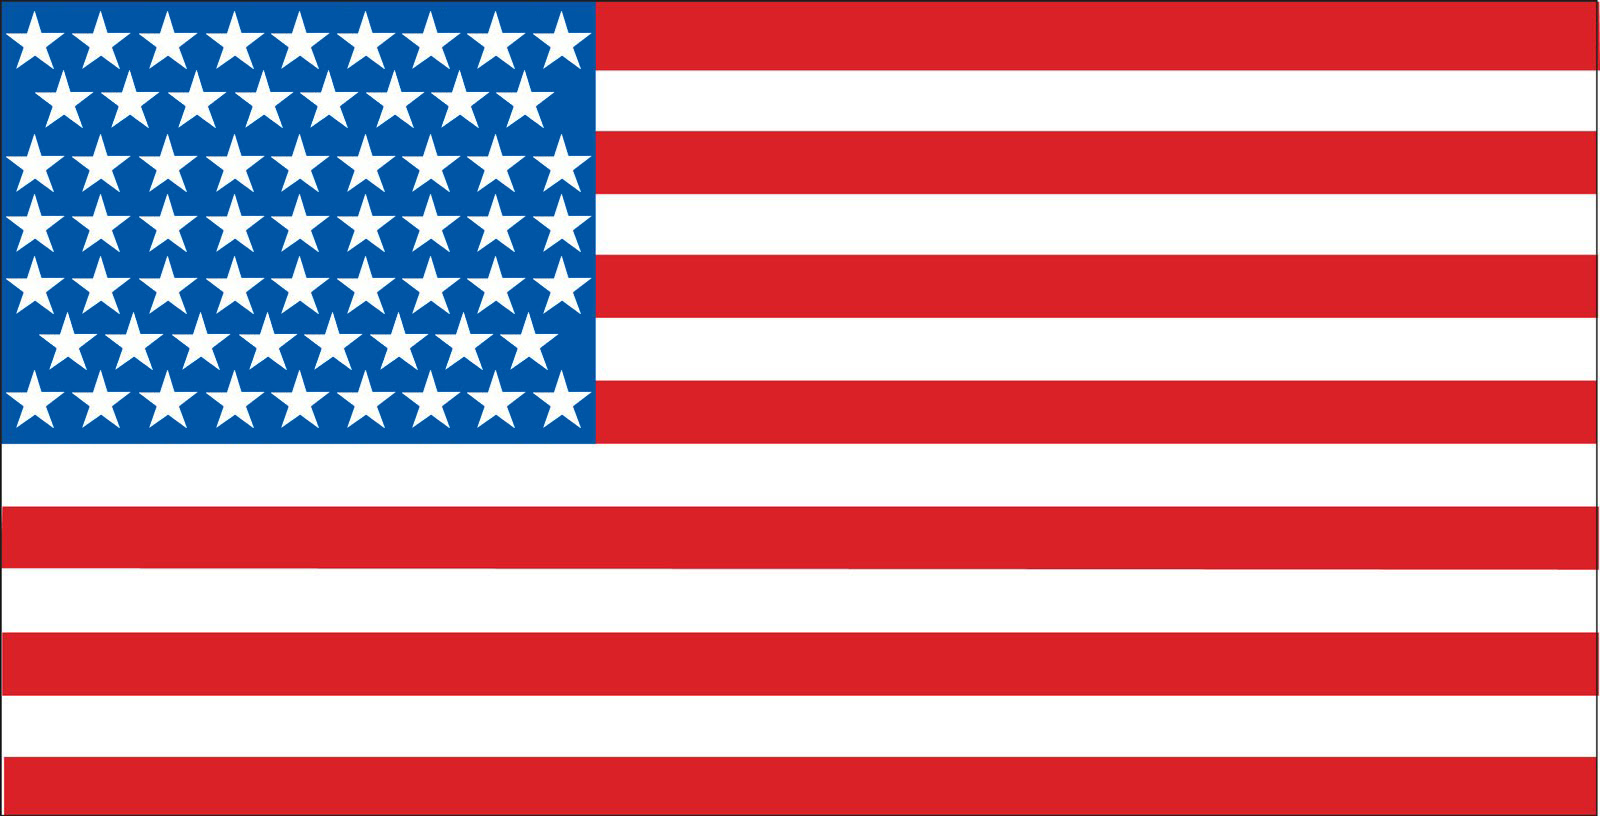 The flag of the United States of America often referred to as the American flag is the national flag of the United States It consists of thirteen equal horizontal